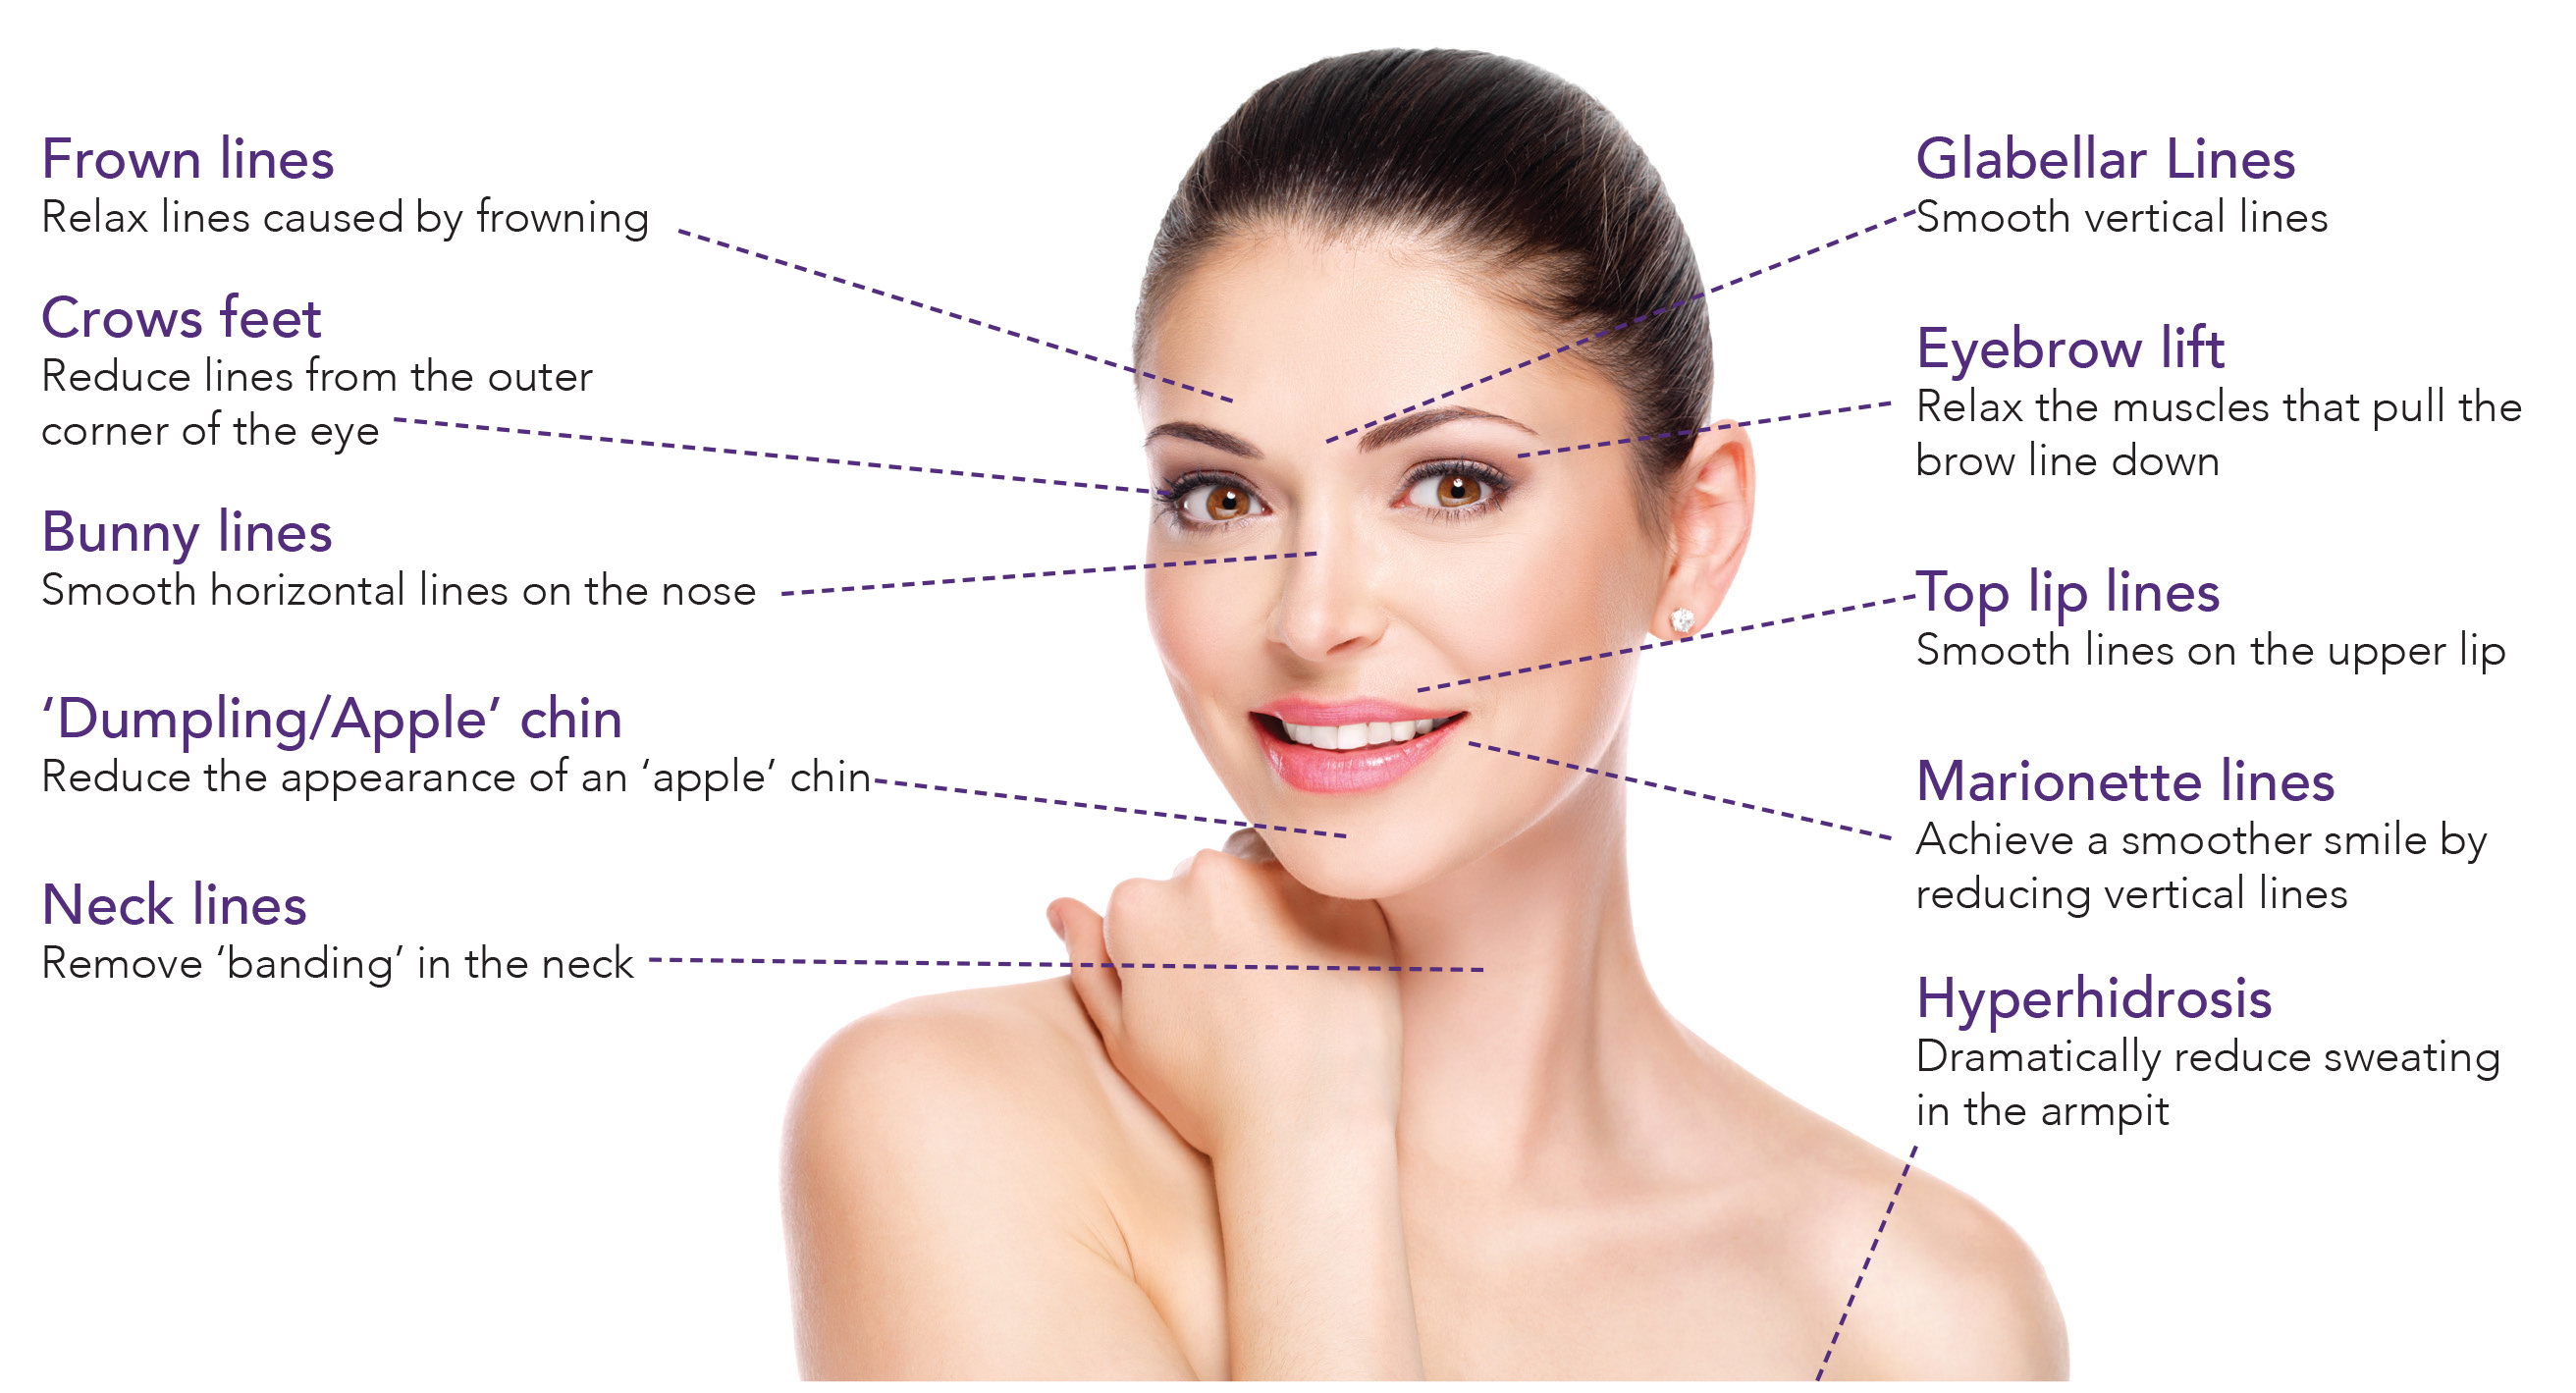 Botox and Fillers in Gurgaon | Dermal Fillers Treatment Cost in Gurgaon